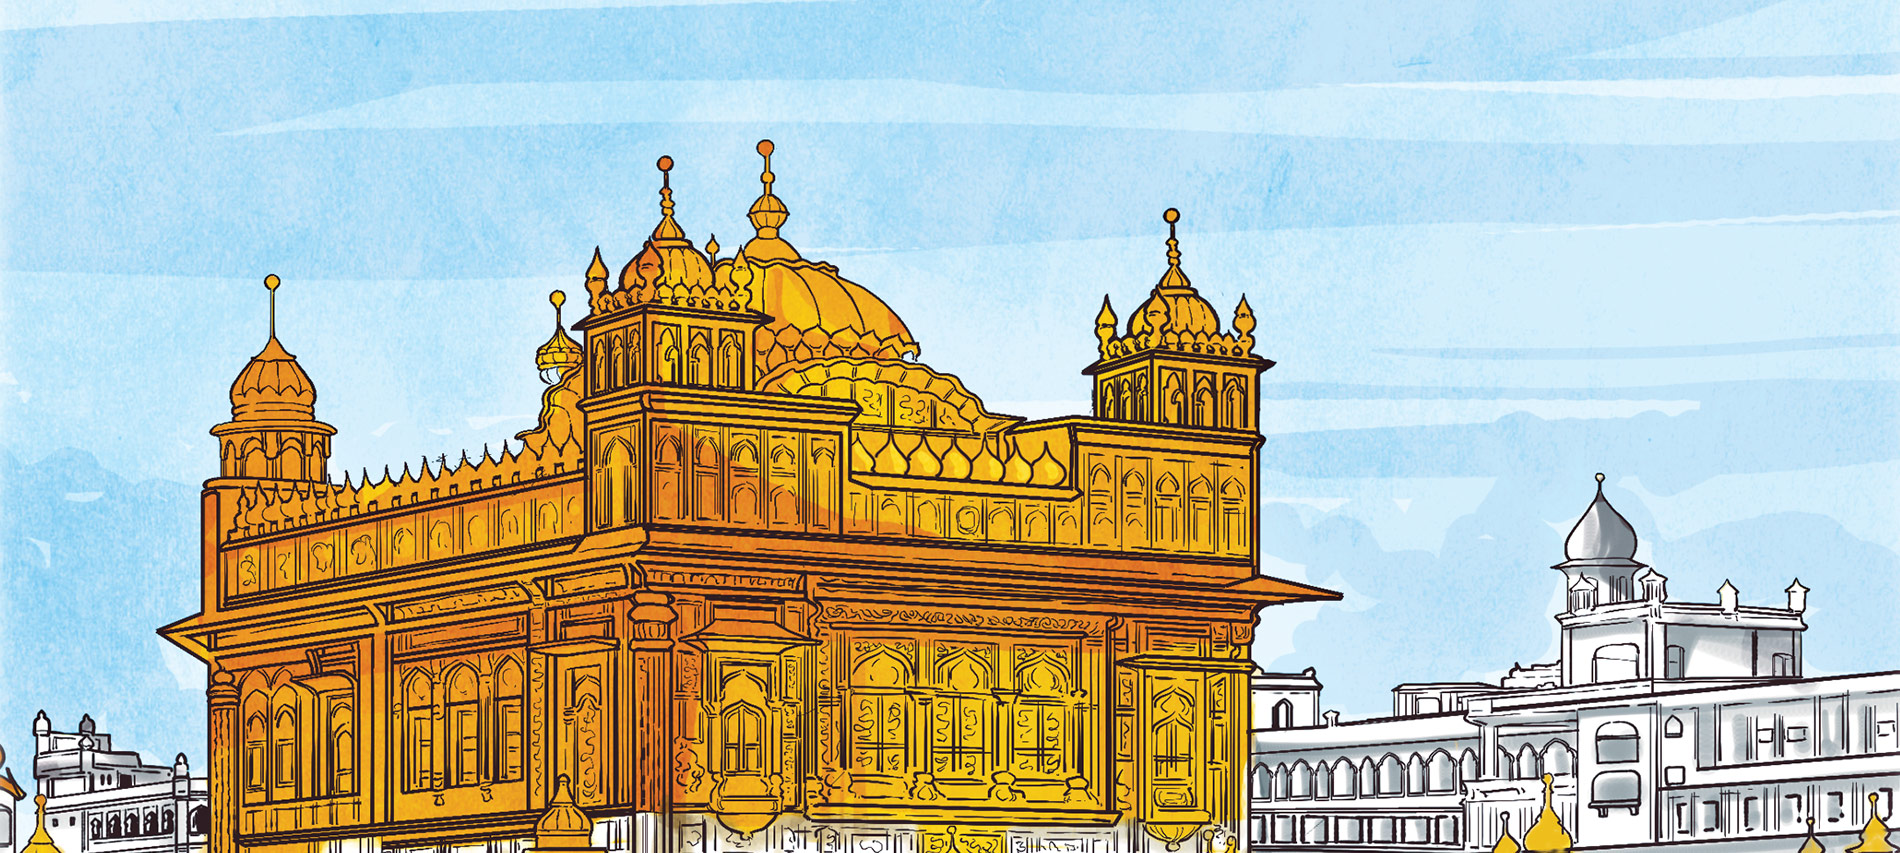 Let's Revisit the Golden Temple with Amma and Her Boys!